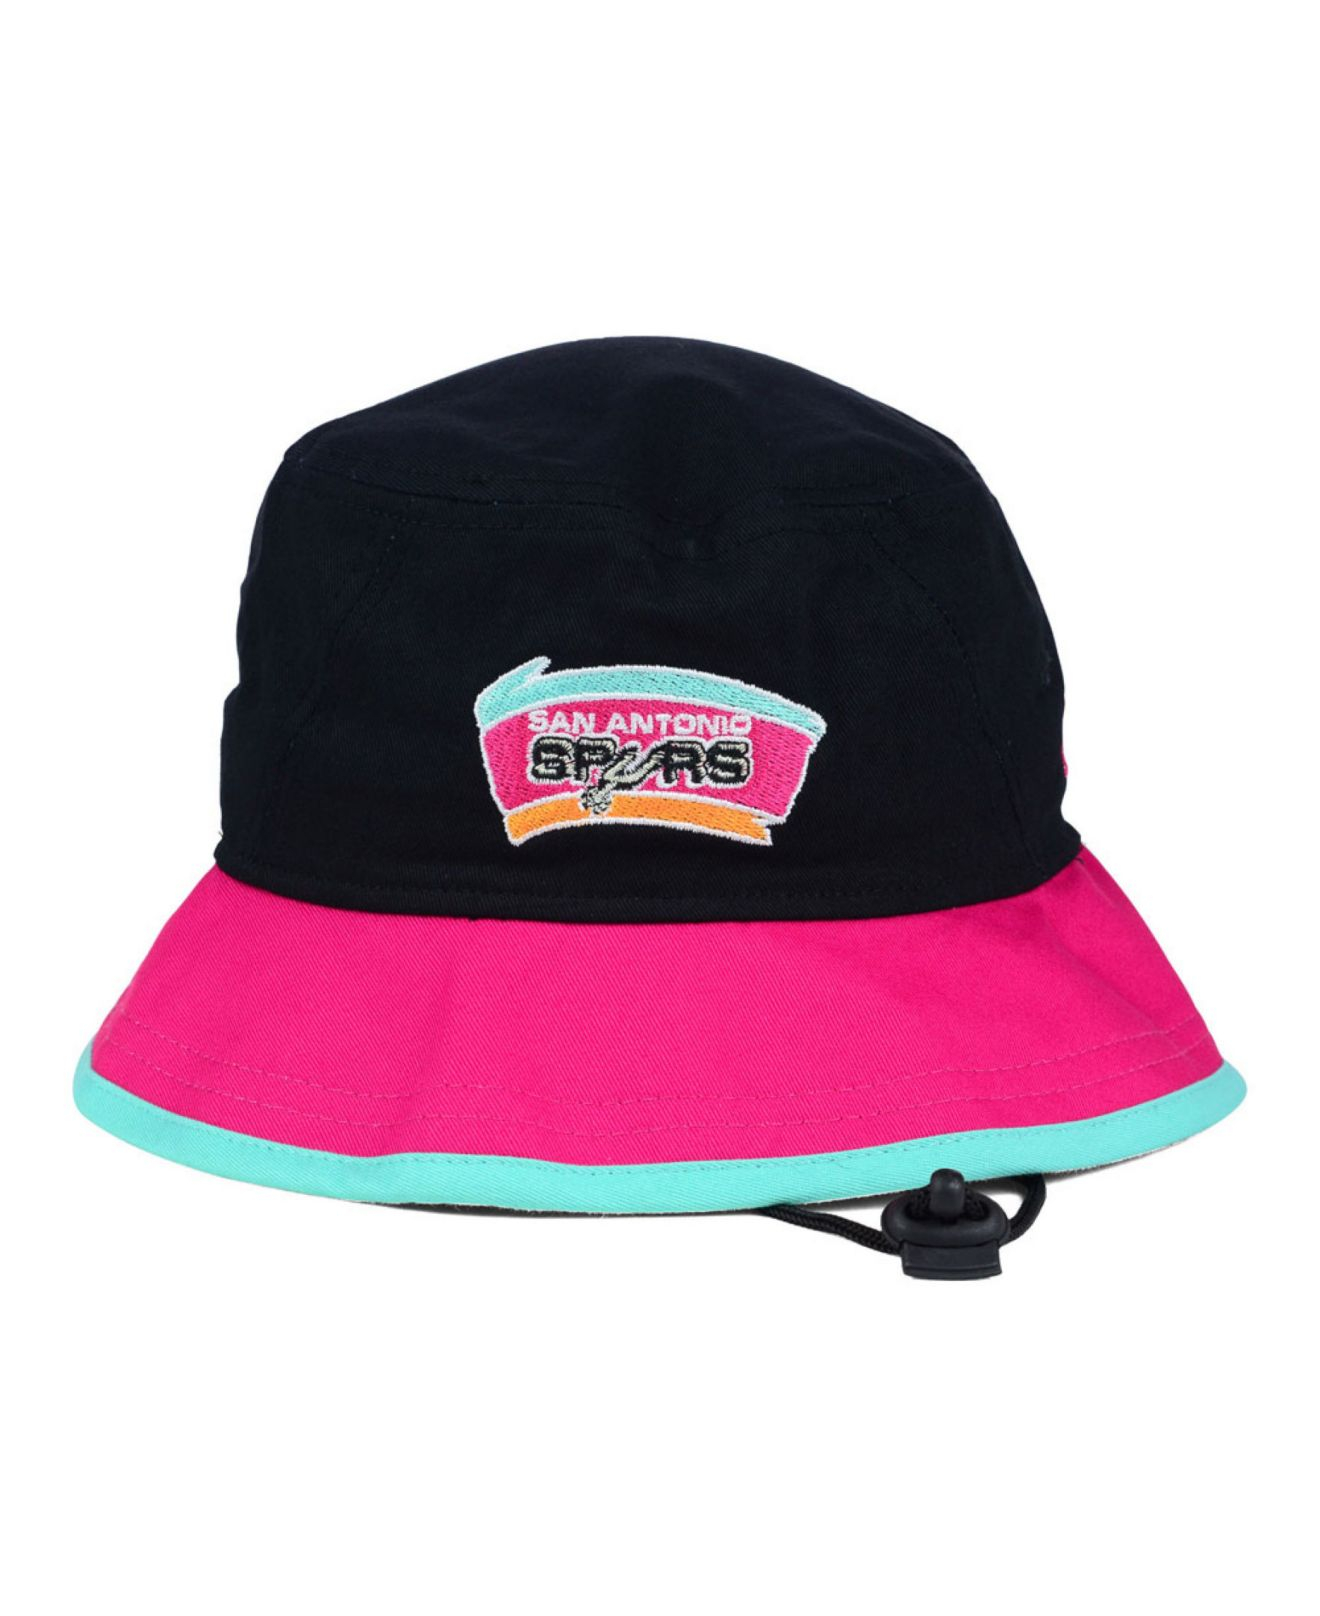 online store 3dc01 ca8ad KTZ San Antonio Spurs Black-top Bucket Hat in Blue for Men - Lyst